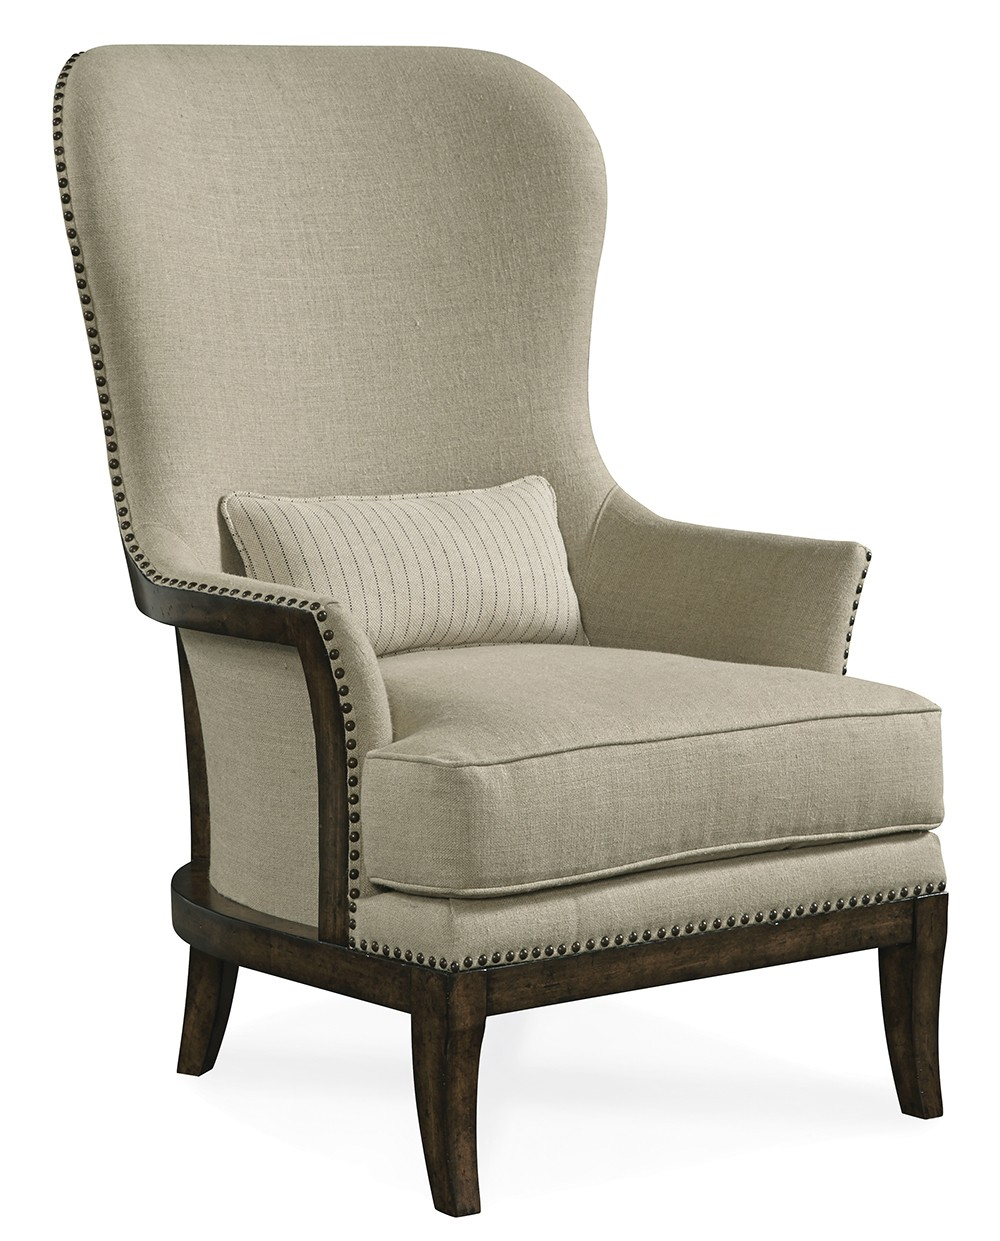 Curved Back Chair Logan Exposed Wood Back Accent Chair Arroyo